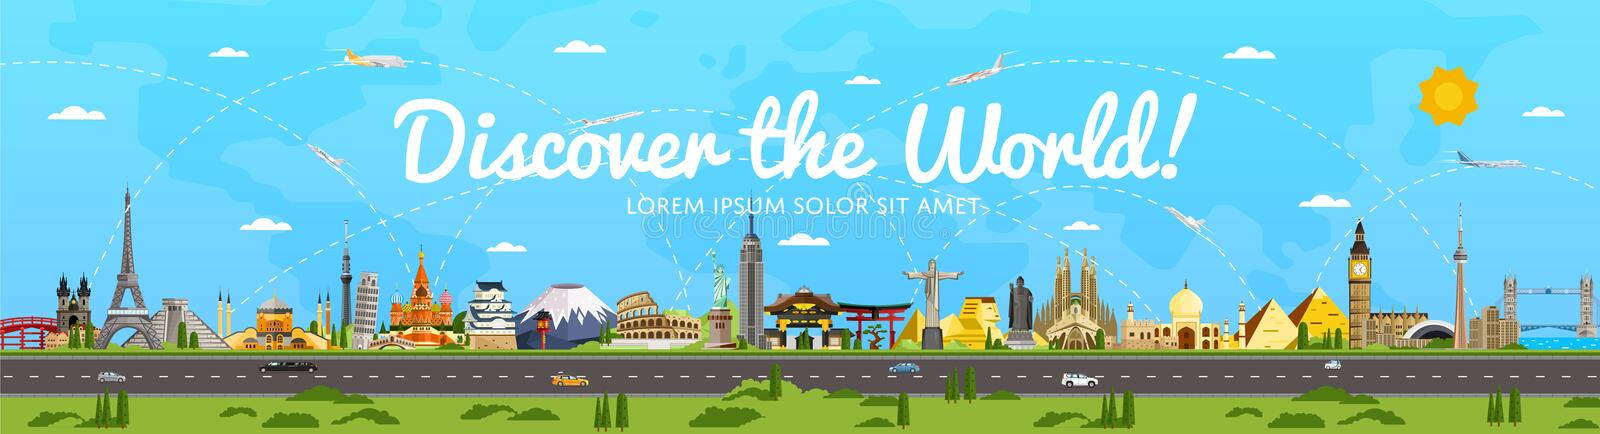 Discover the World poster with famous attractions. Vector illustration. Sphinx, Himeji Castle, Toronto TV tower, Torii gate, Egyptian pyramid, Old Town Square vector illustration